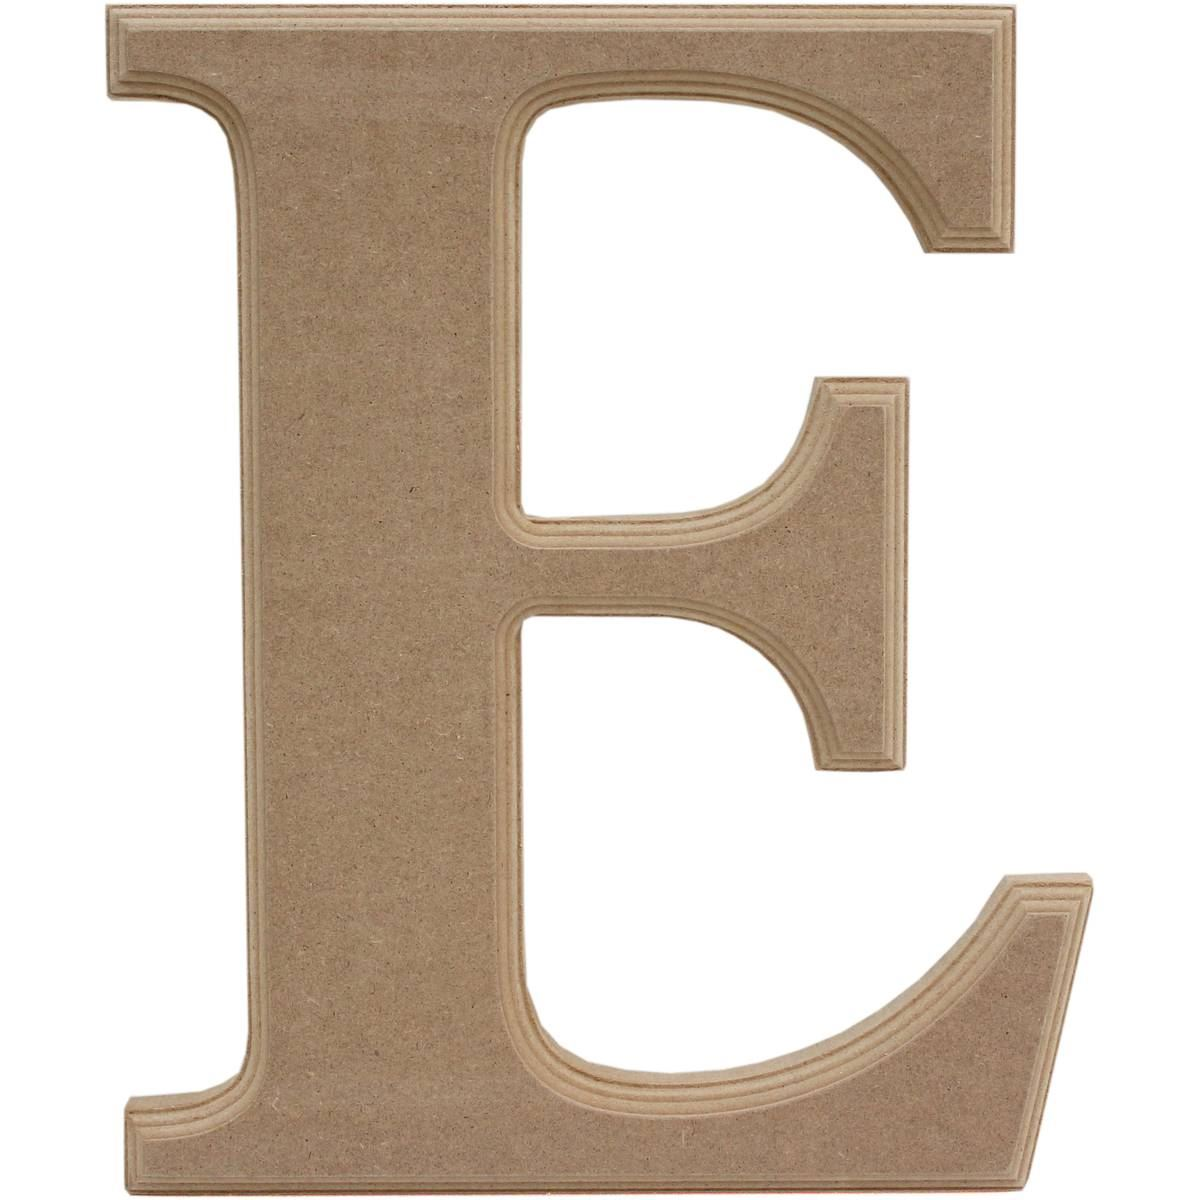 Hobbycraft home decoration wooden mdf letter plaque for Decoration 5 letters